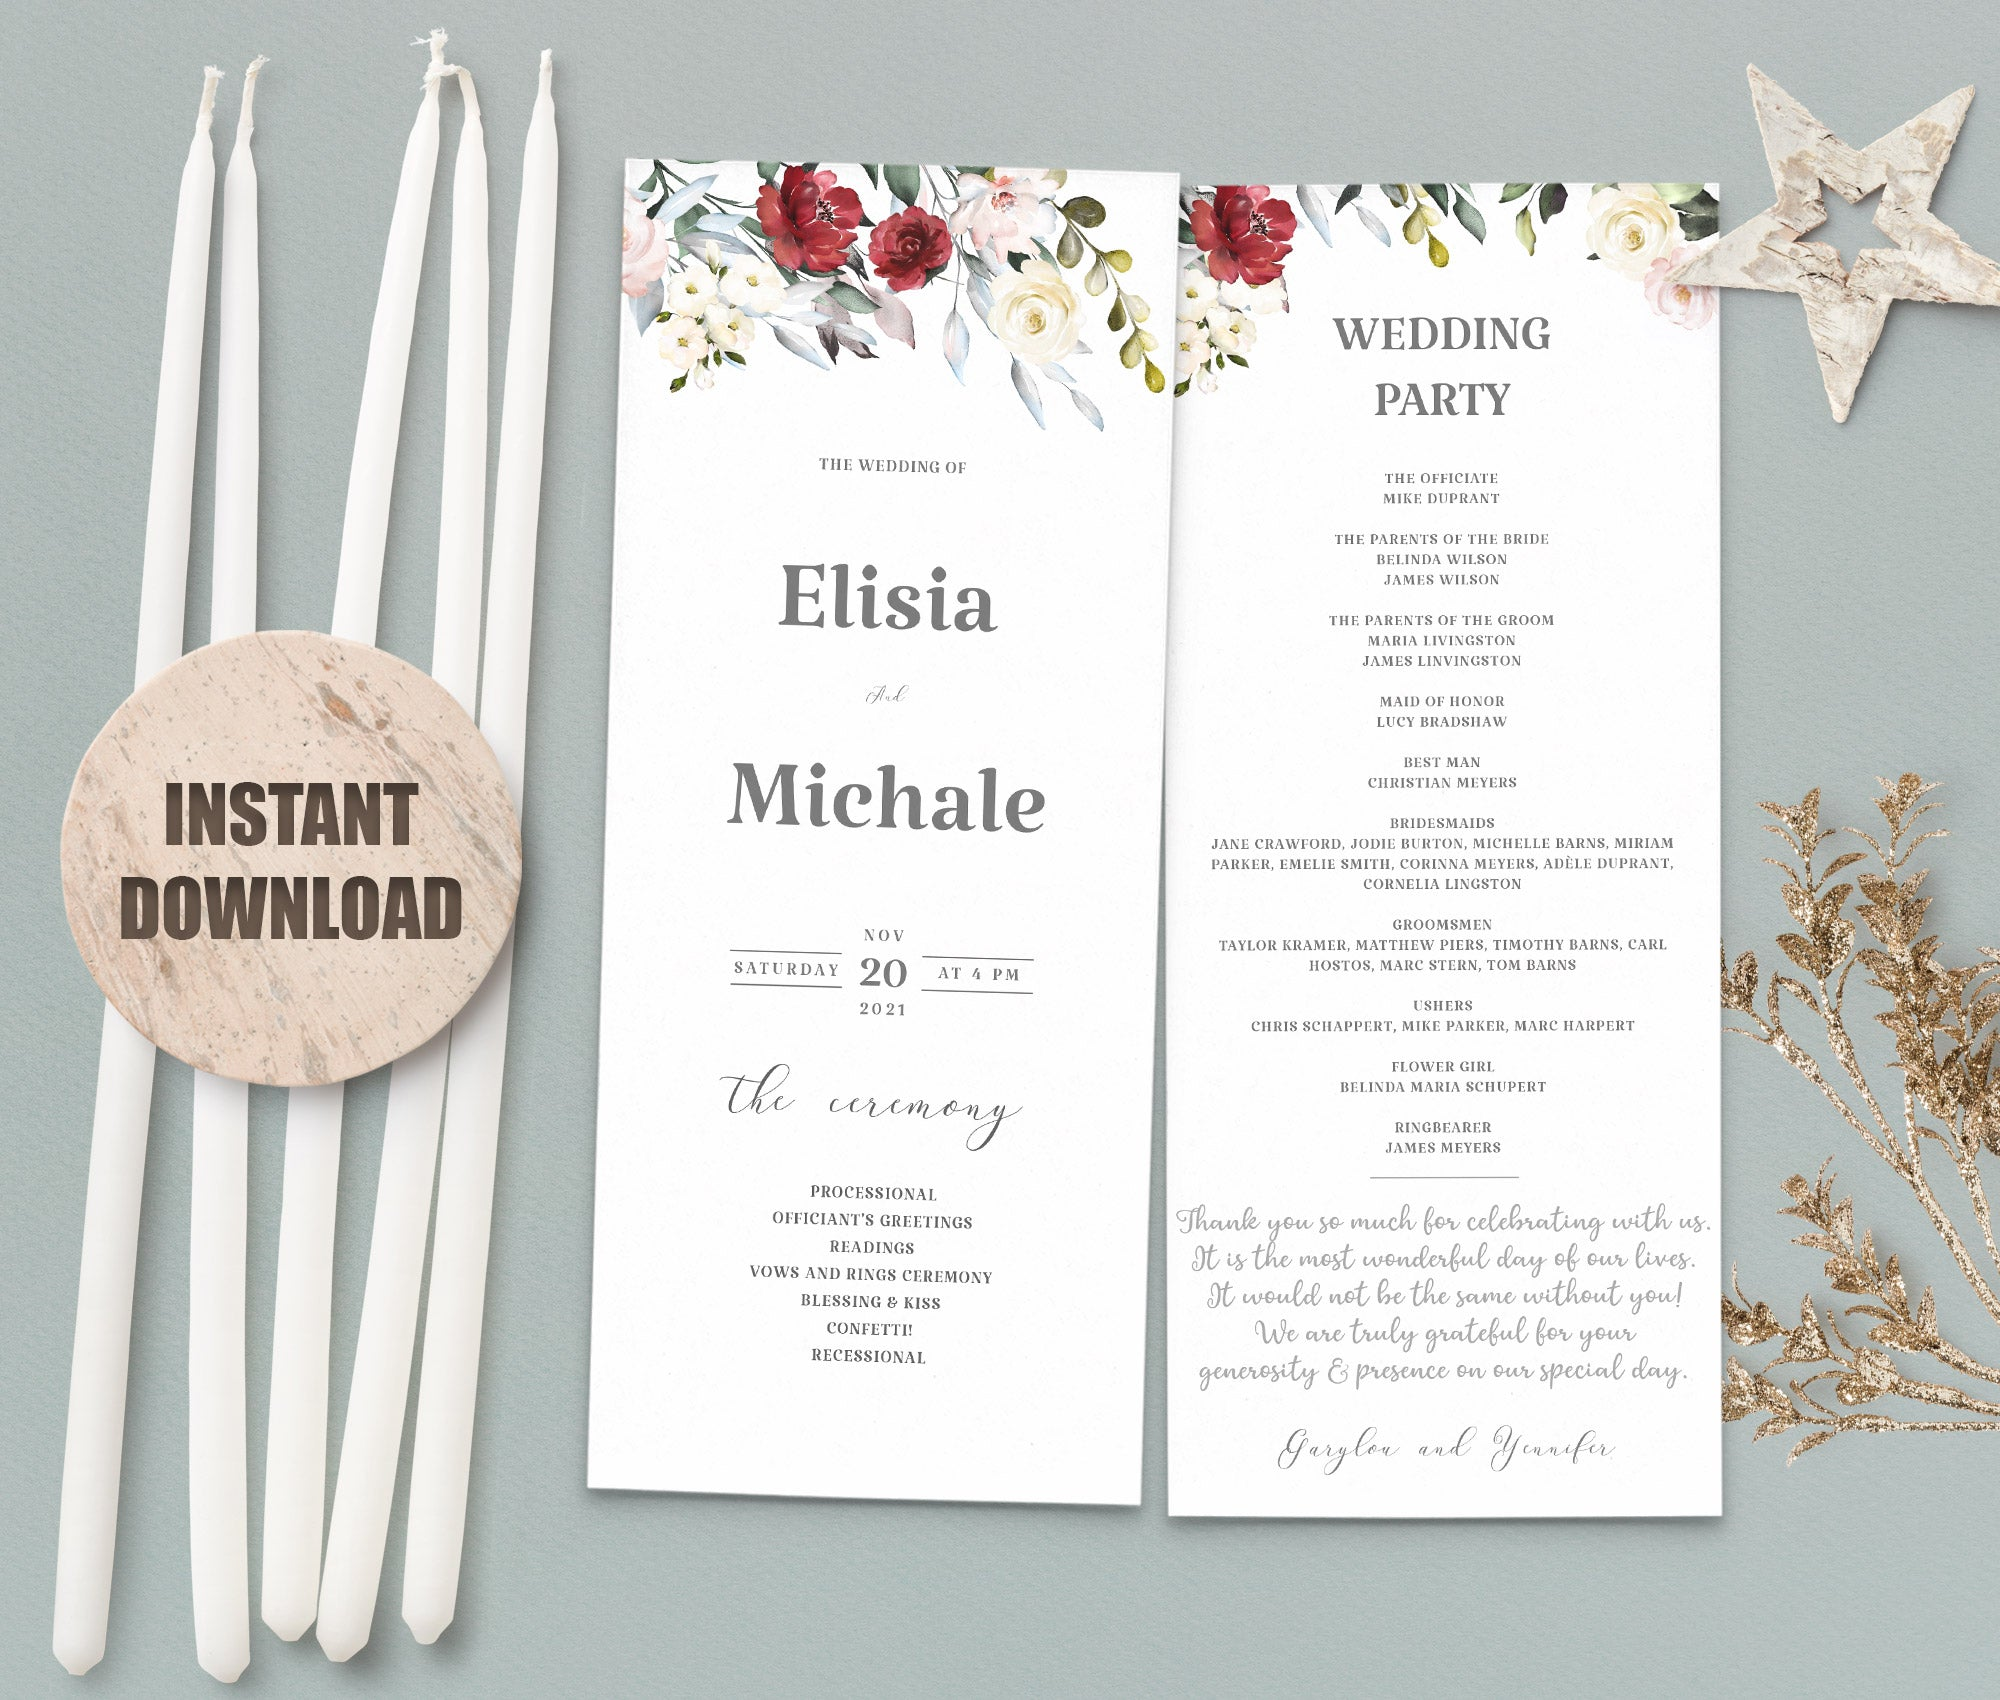 LOVAL Wedding Program set 2